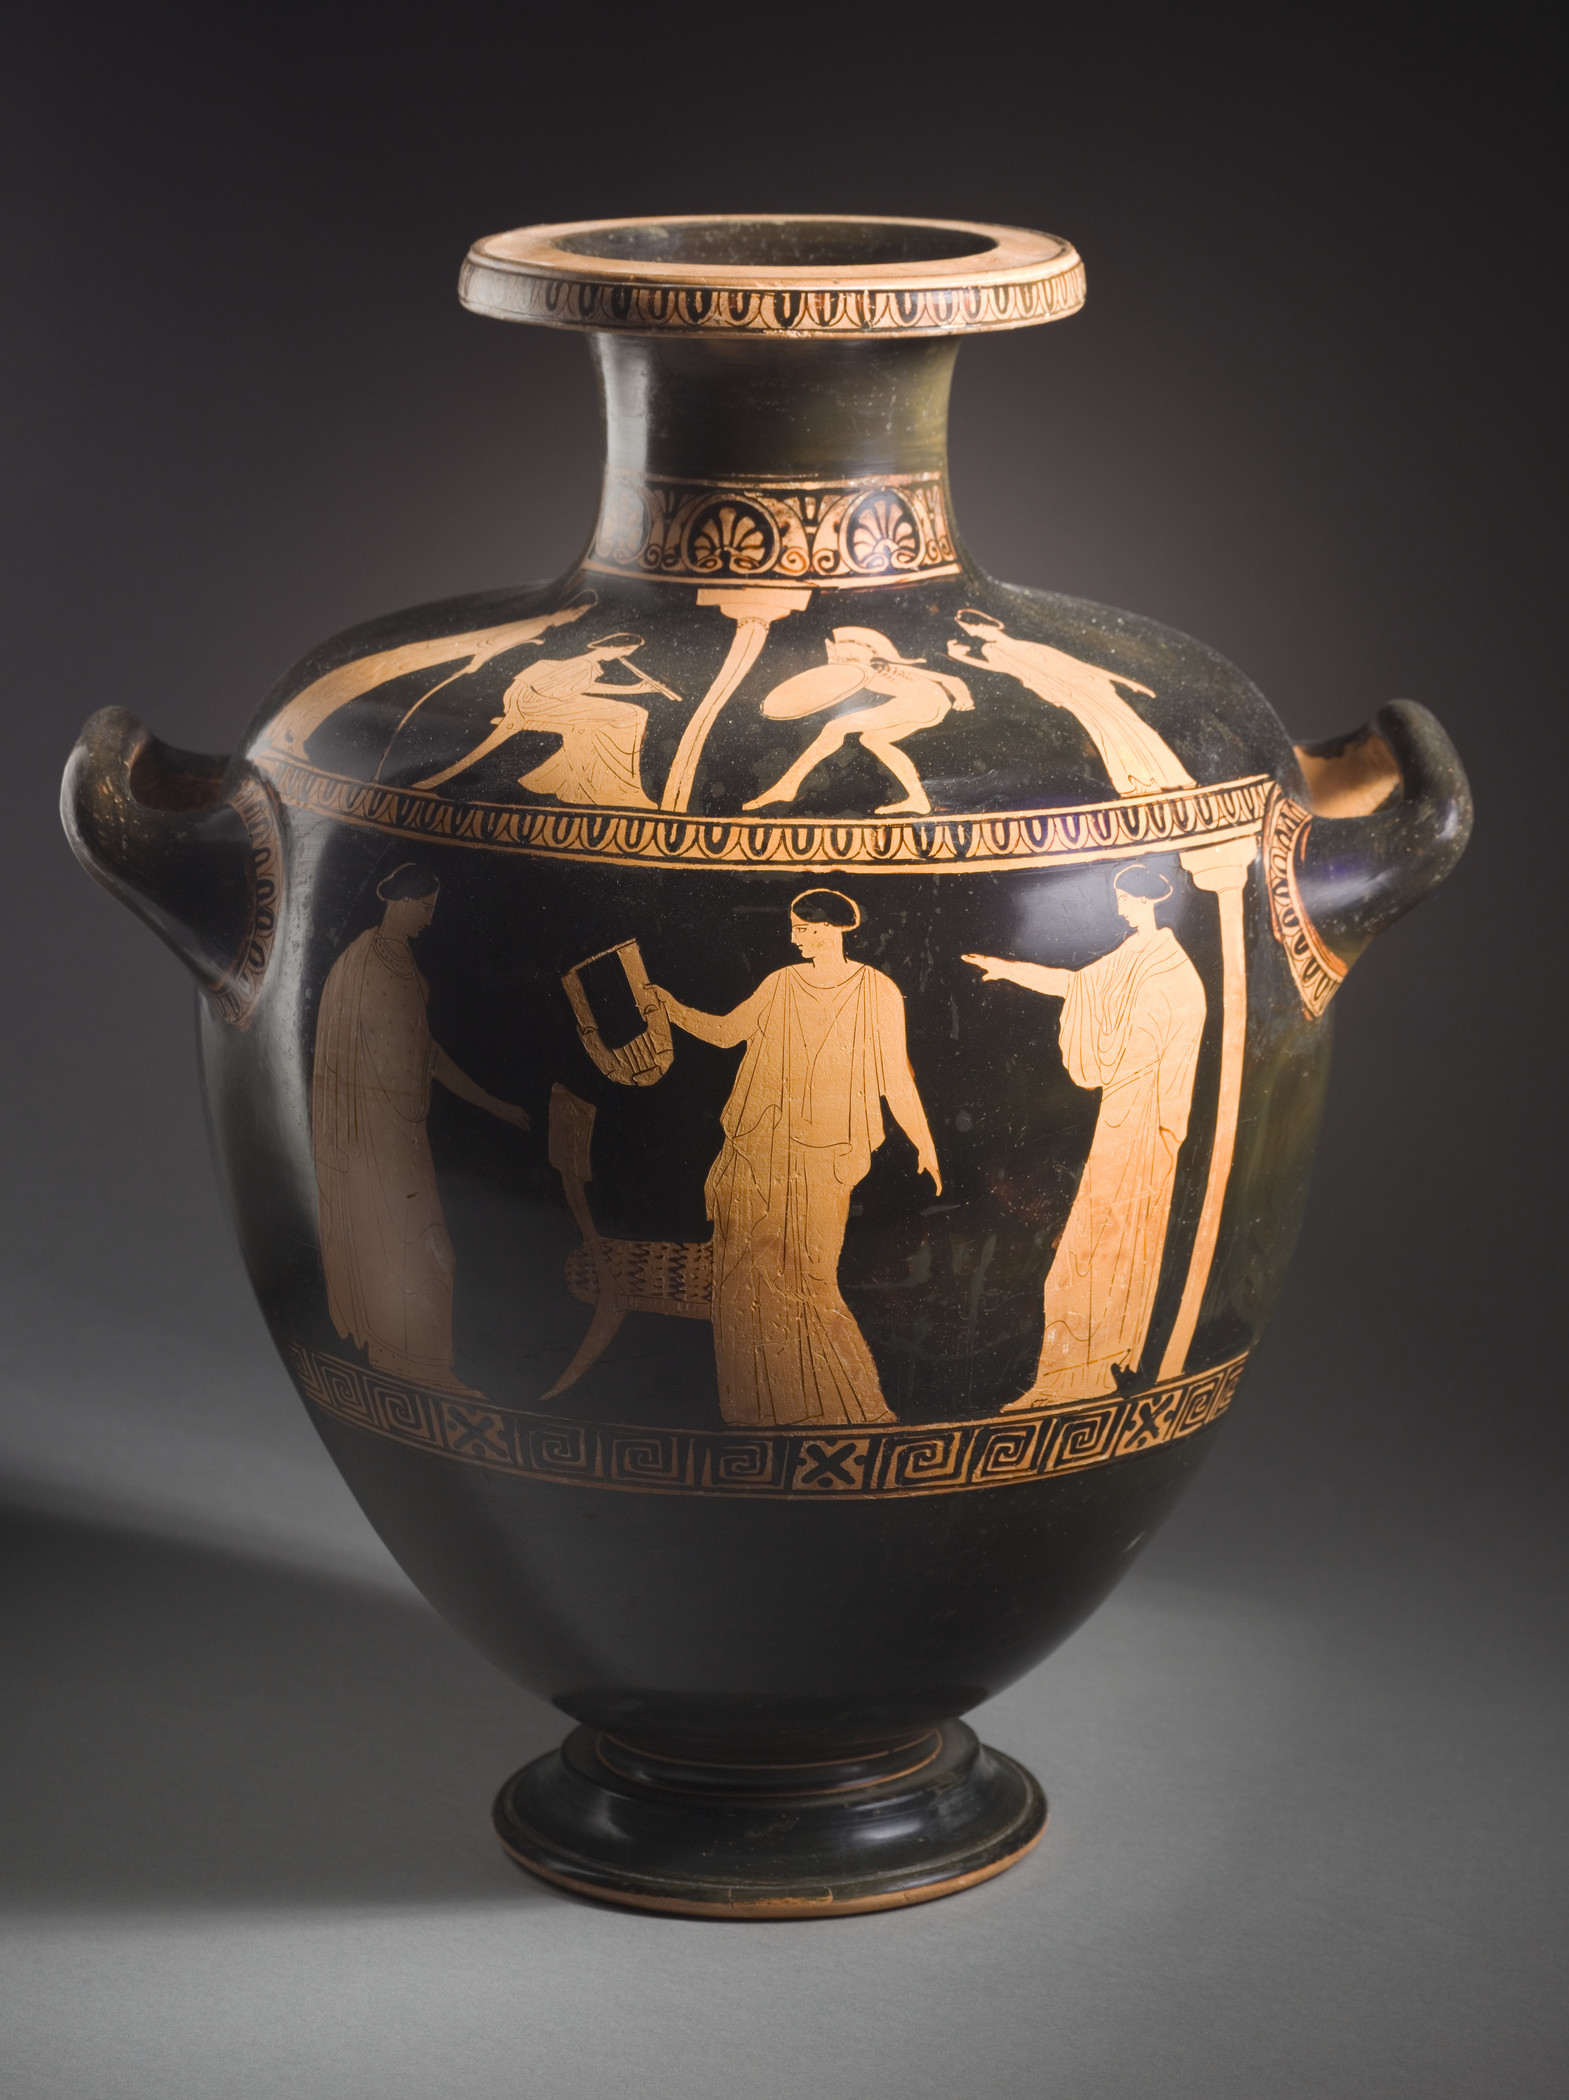 Red-Figure Hydria with (shoulder) a Dancing Warrior, Accompanied by a Woman Playing the Pipes, and (body) Two Women Facing a Woman Holding a Kithara, Greece, Athens, c. 440 BCE, Los Angeles County Museum of Art, gift of Mr. and Mrs. Spiros G. Ponty, photo © Museum Associates/LACMA